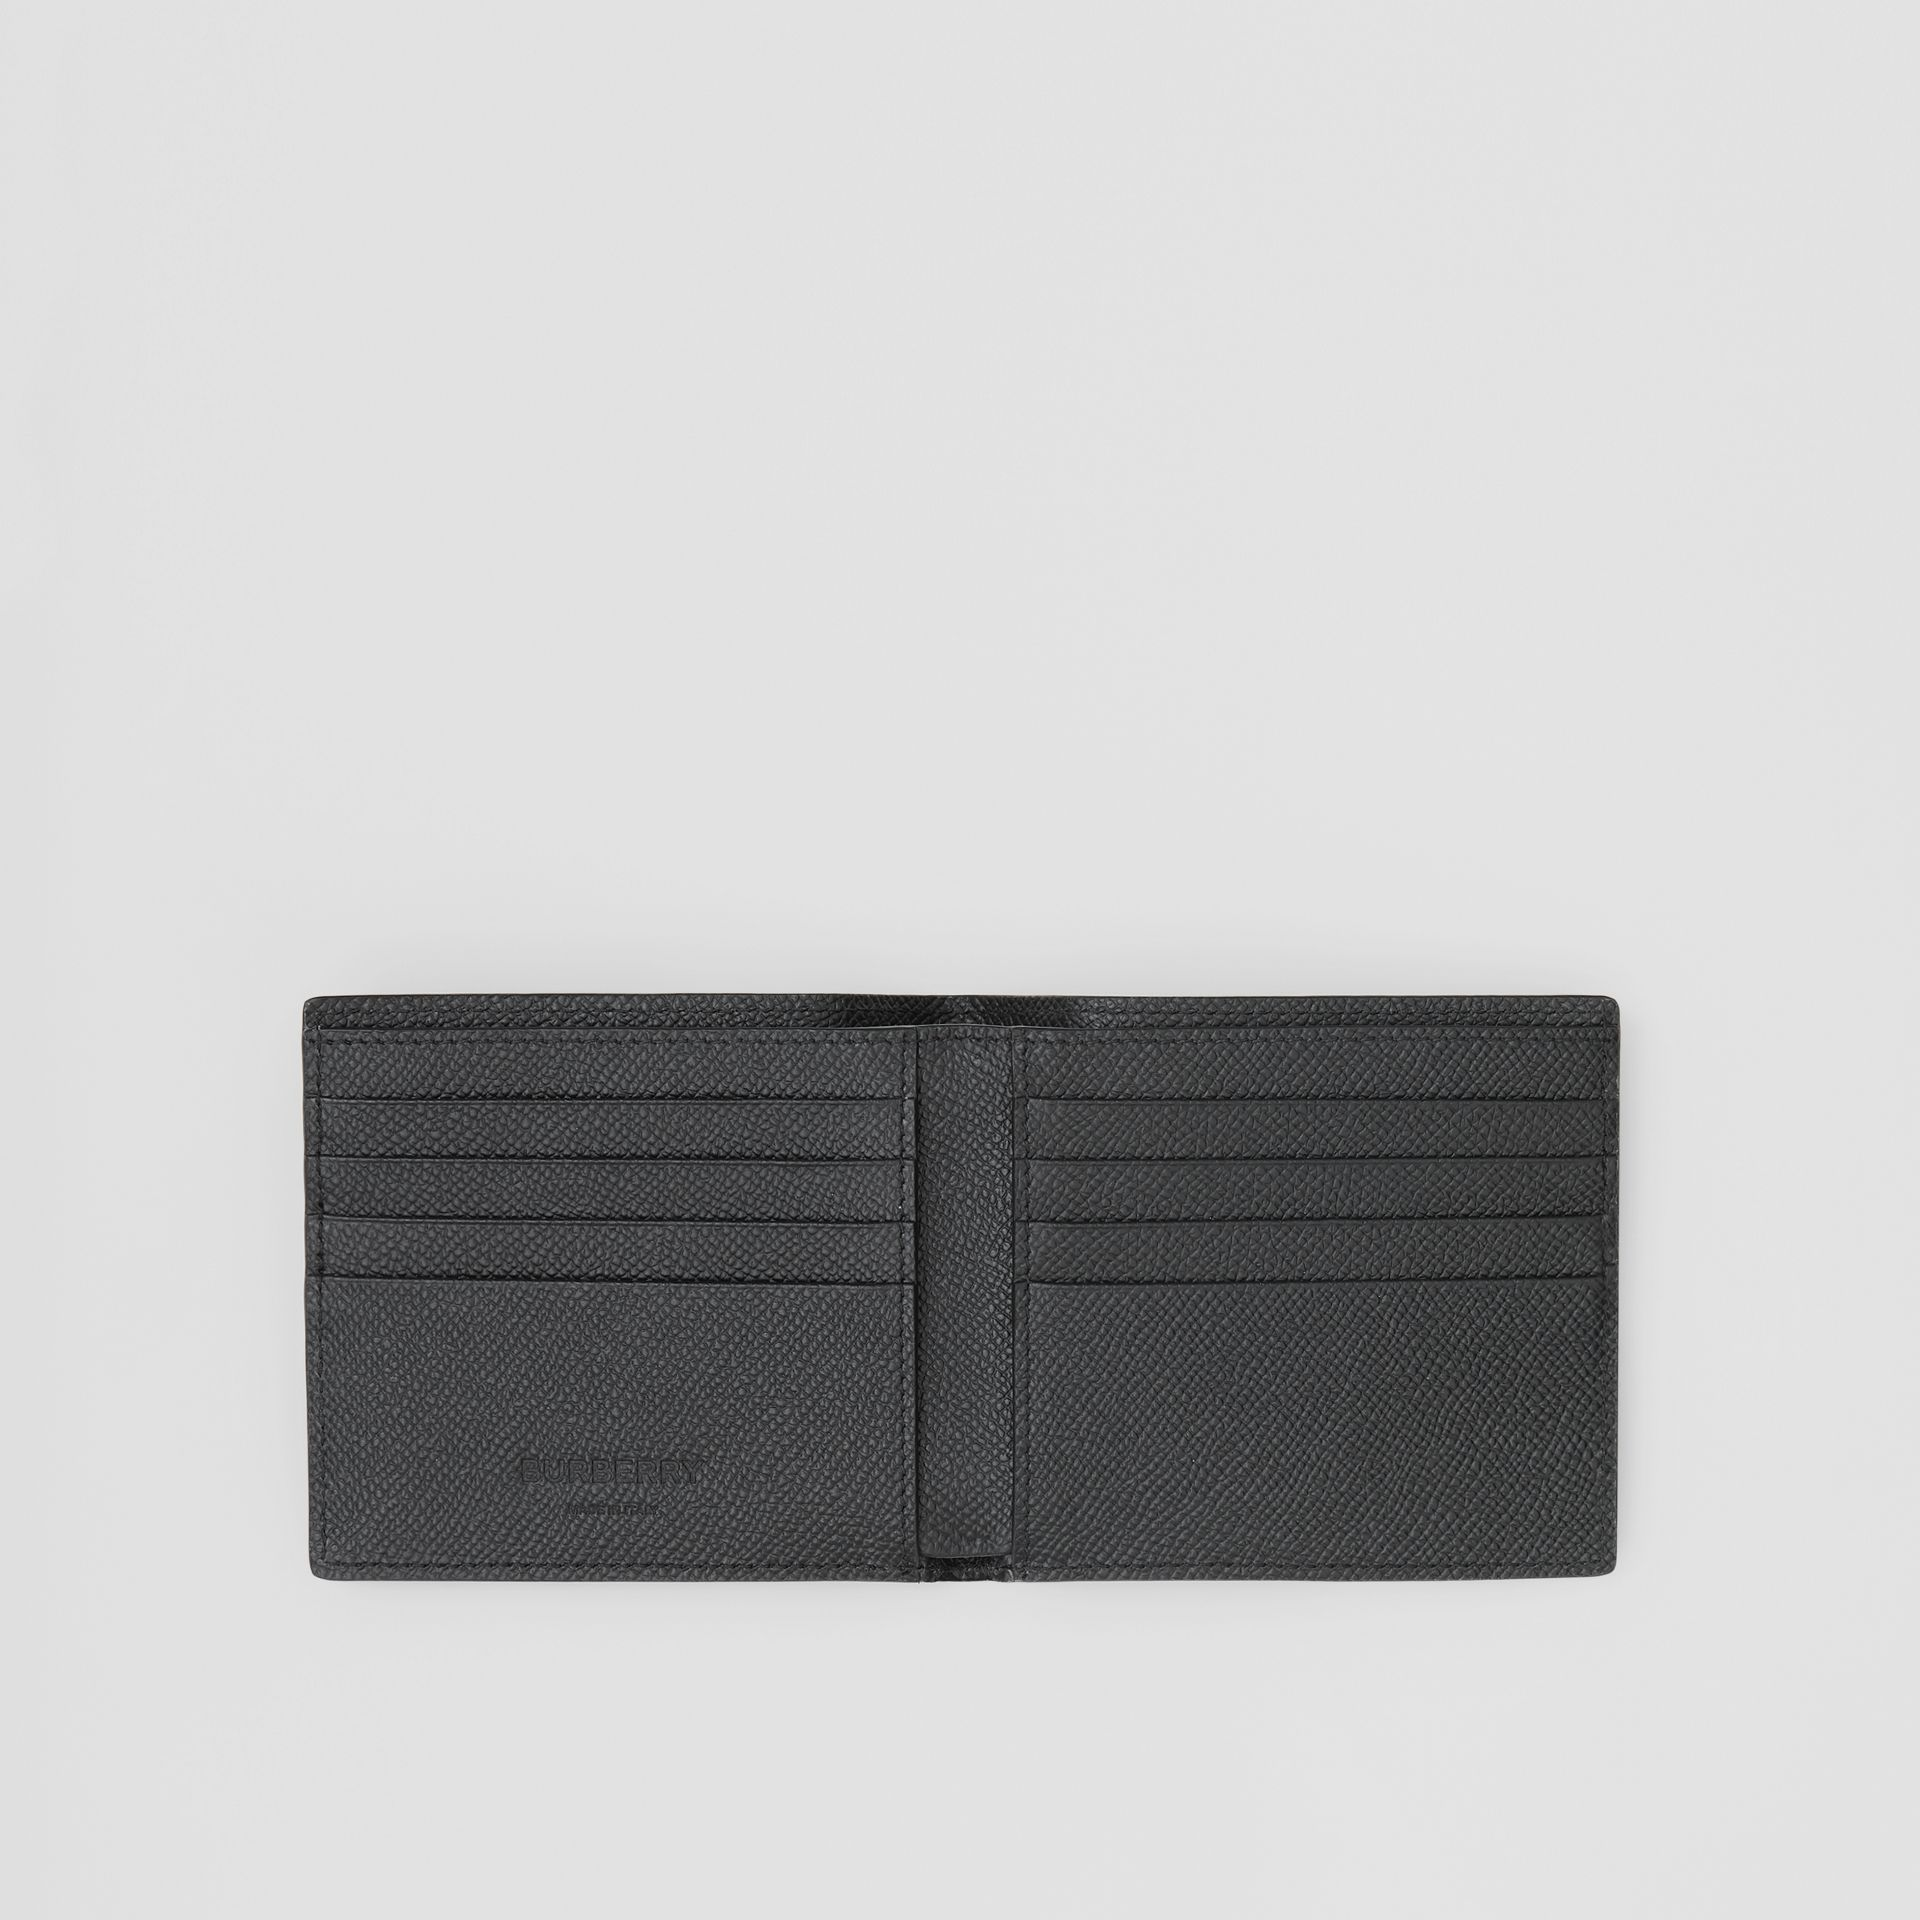 Grainy Leather International Bifold Wallet in Black - Men | Burberry - gallery image 2